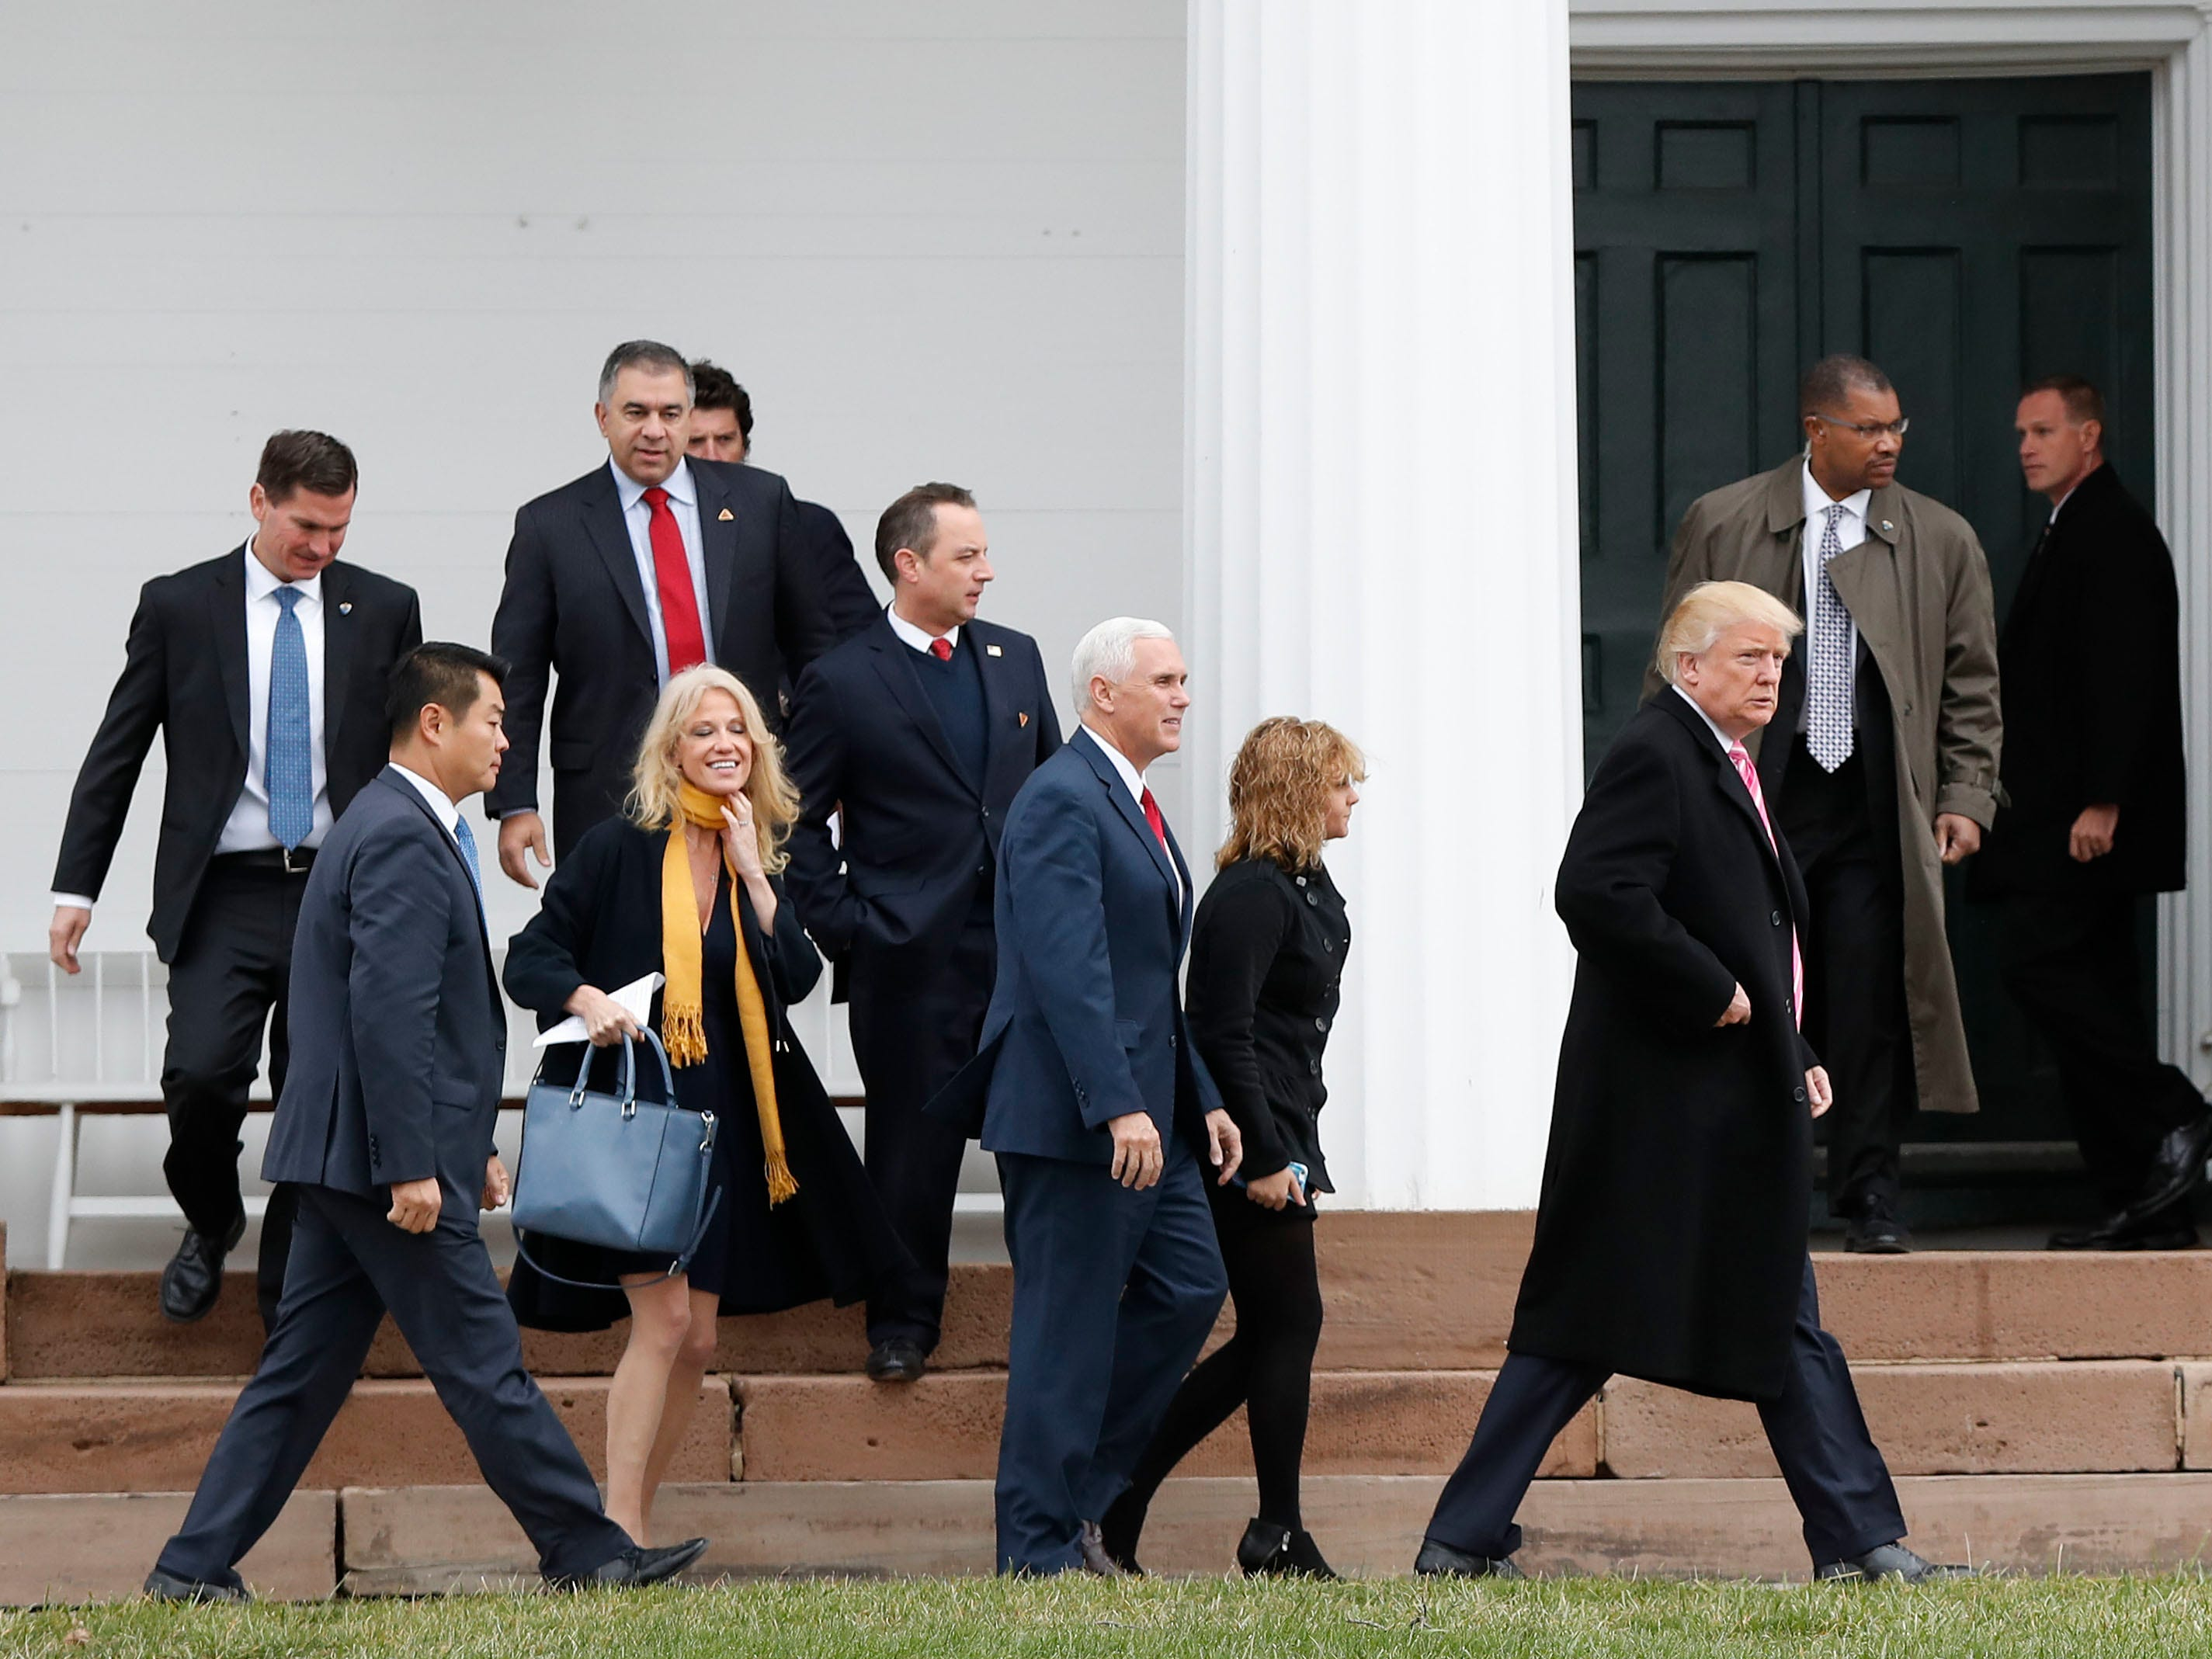 President-elect Donald Trump (foreground from right), Charlotte Pence, Vice President-elect Mike Pence, incoming White House Chief of Staff Reince Priebus and Kellyanne Conway leave services at Lamington Presbyterian Church in Bedminster, N.J.